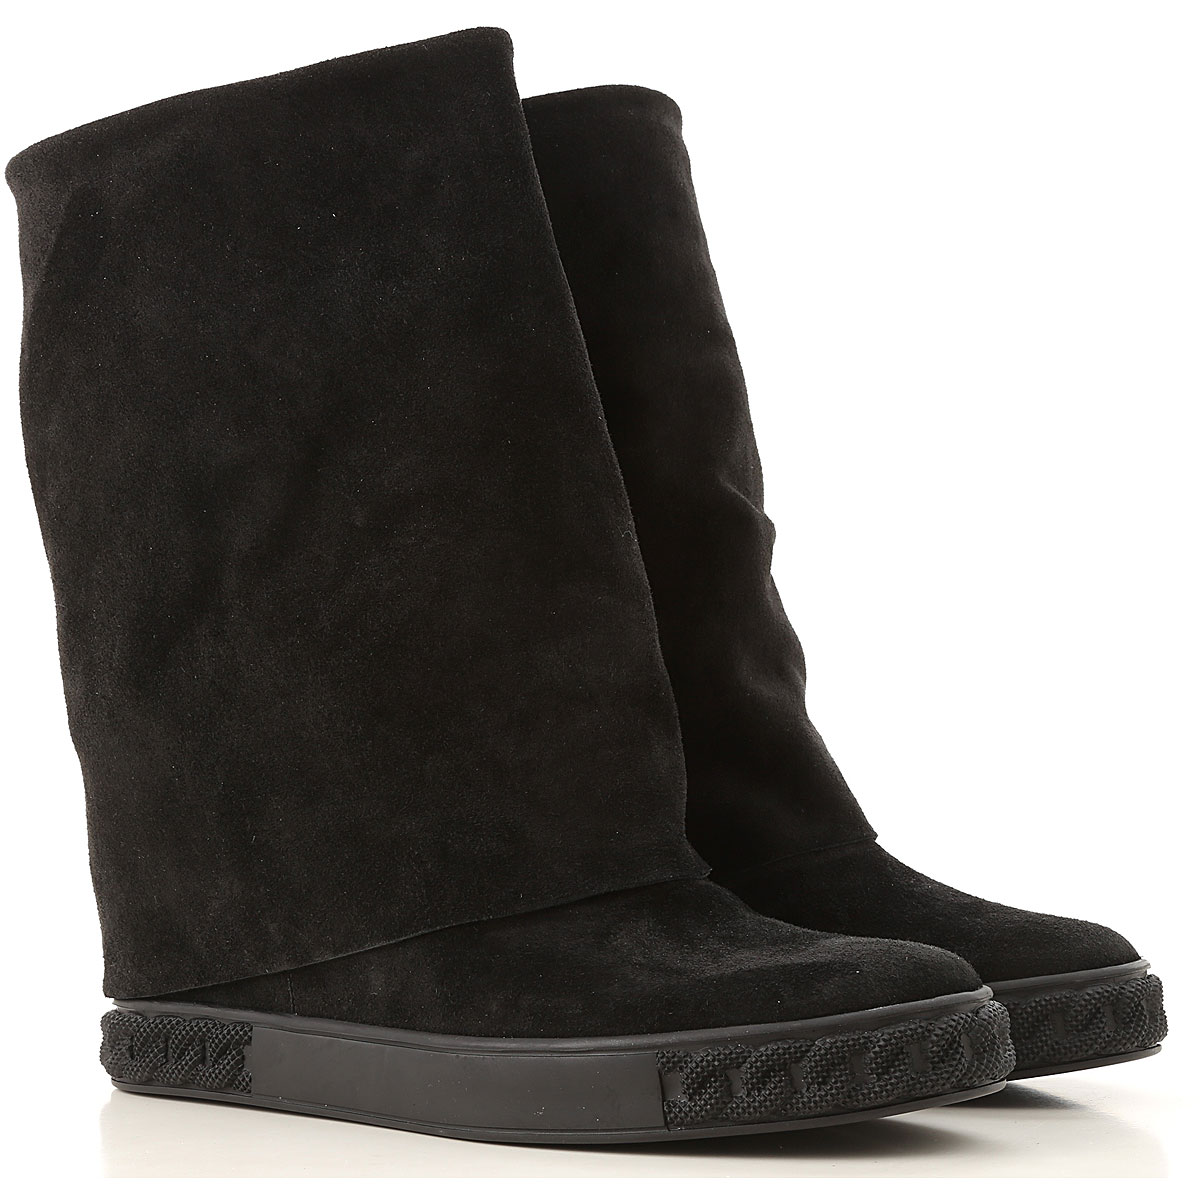 Image of Casadei Boots for Women, Booties, Black, Suede leather, 2017, 10 5 6 7 8 9